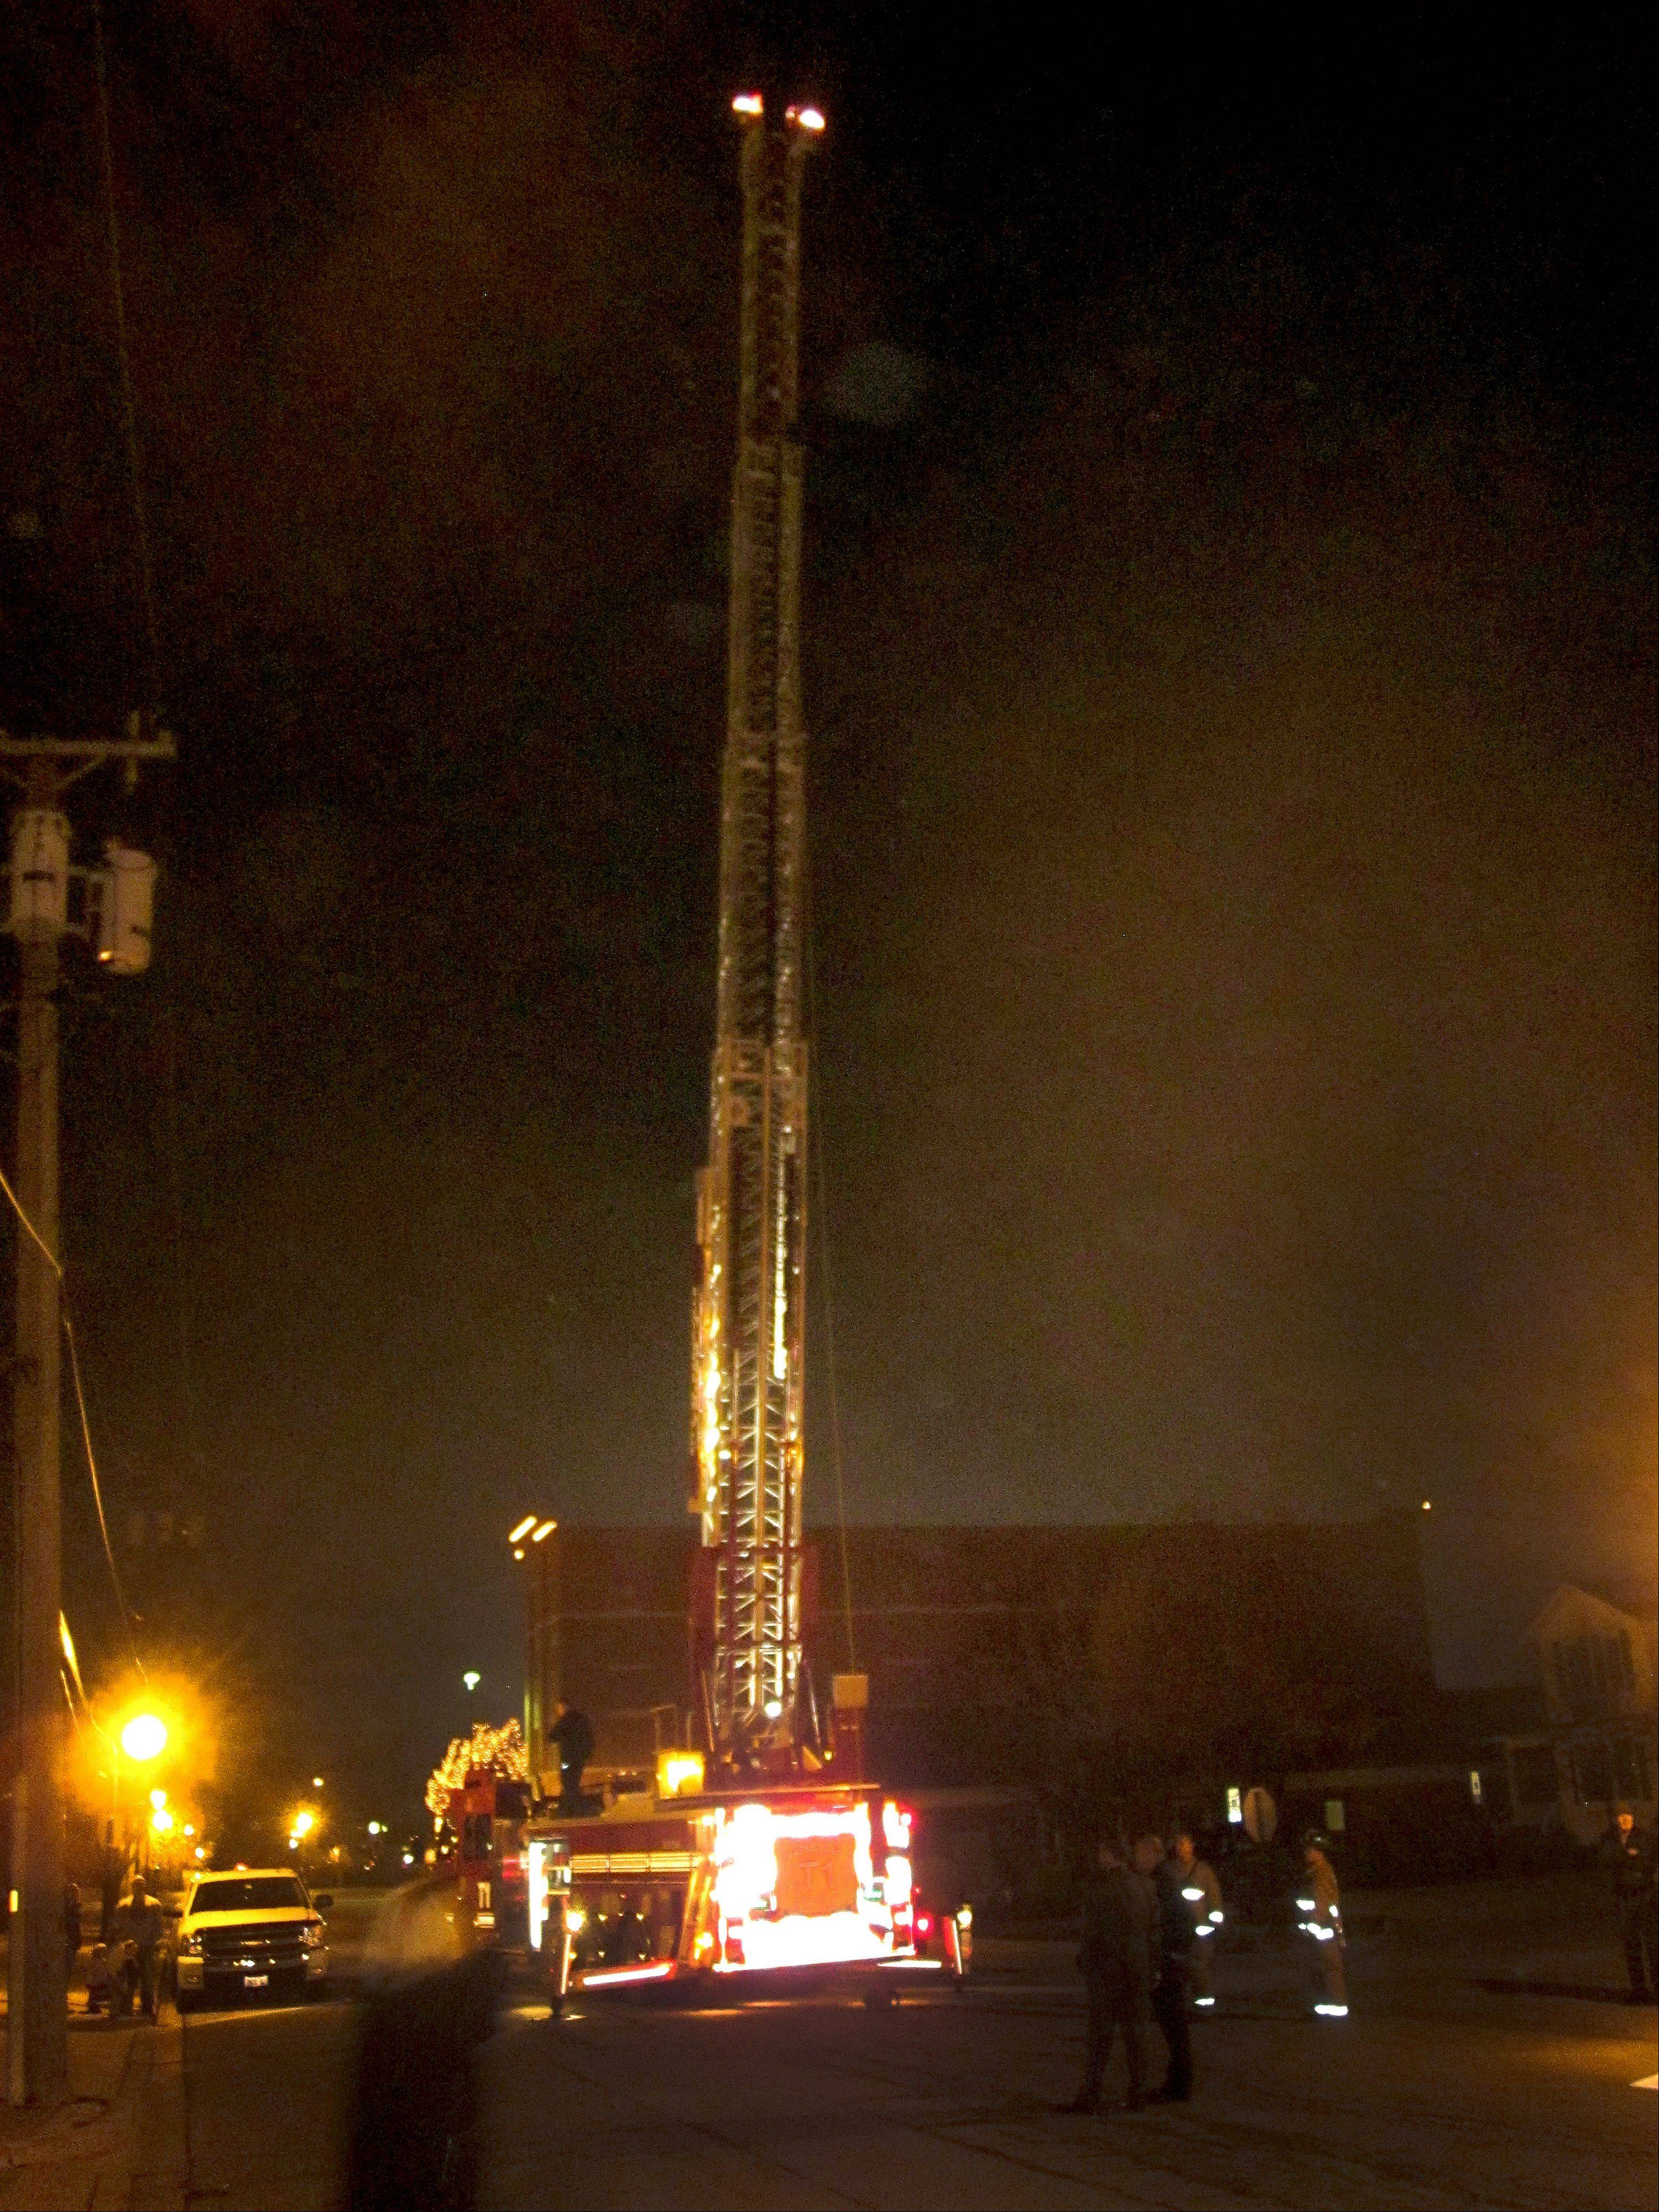 A Naperville fire truck was brought to Water Street Tuesday night to help residents and city officials estimate the height of the proposed Water Street development. Fully extended, the lights atop the ladder represent the proposed height of nearly 88-feet.